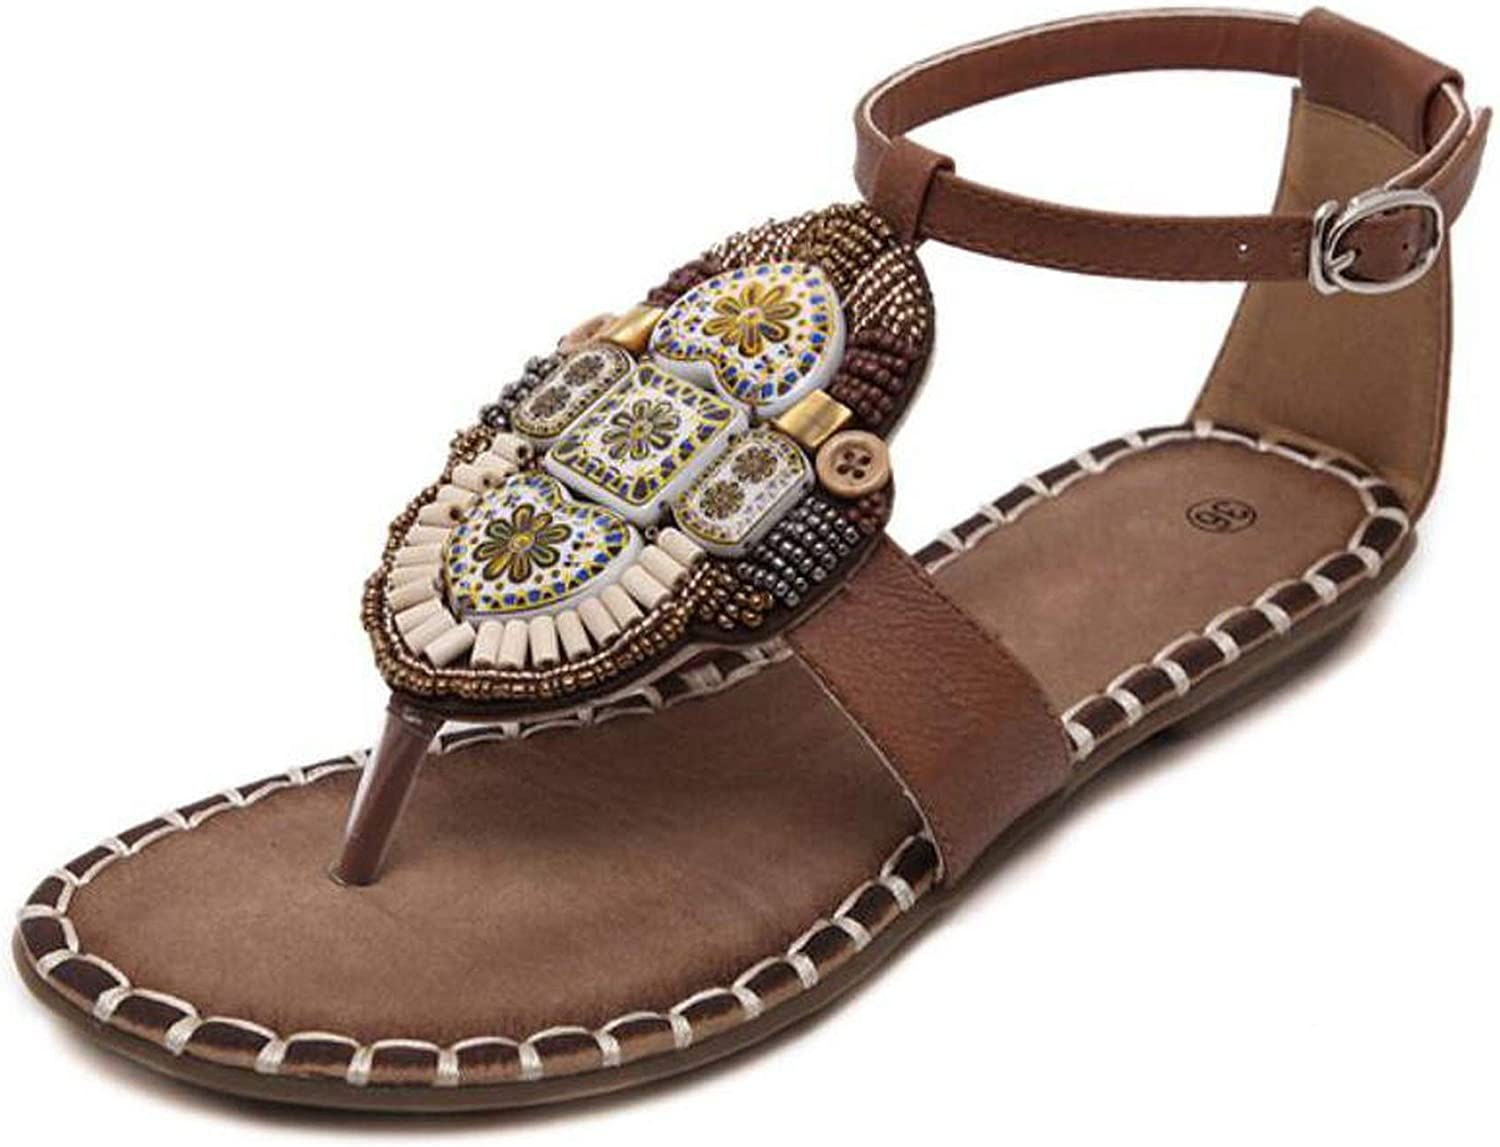 Summer Women Sandals Bohemian Beading Pu Printed Casual Flat Sandals for Woman M561